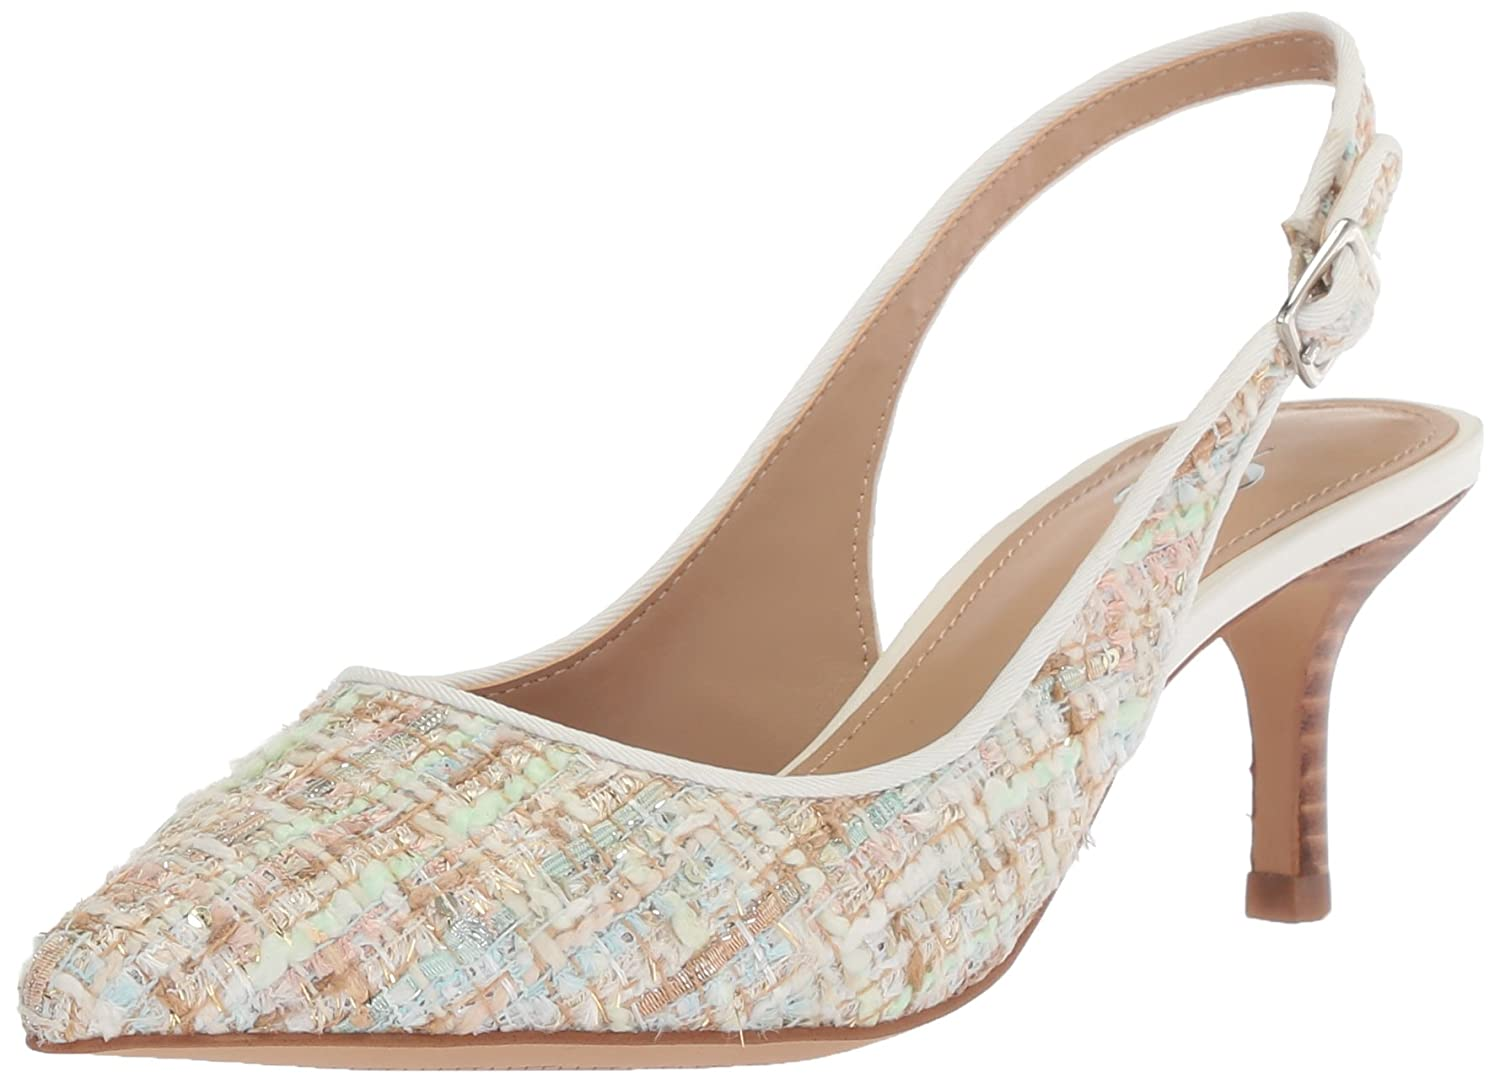 The Fix Womens Felicia Slingback Kitten Heel Pump B078fhbdhk Bm Clarette Wedges Coraline Beige 10 Us Bright White Multi Tweed 9a963a